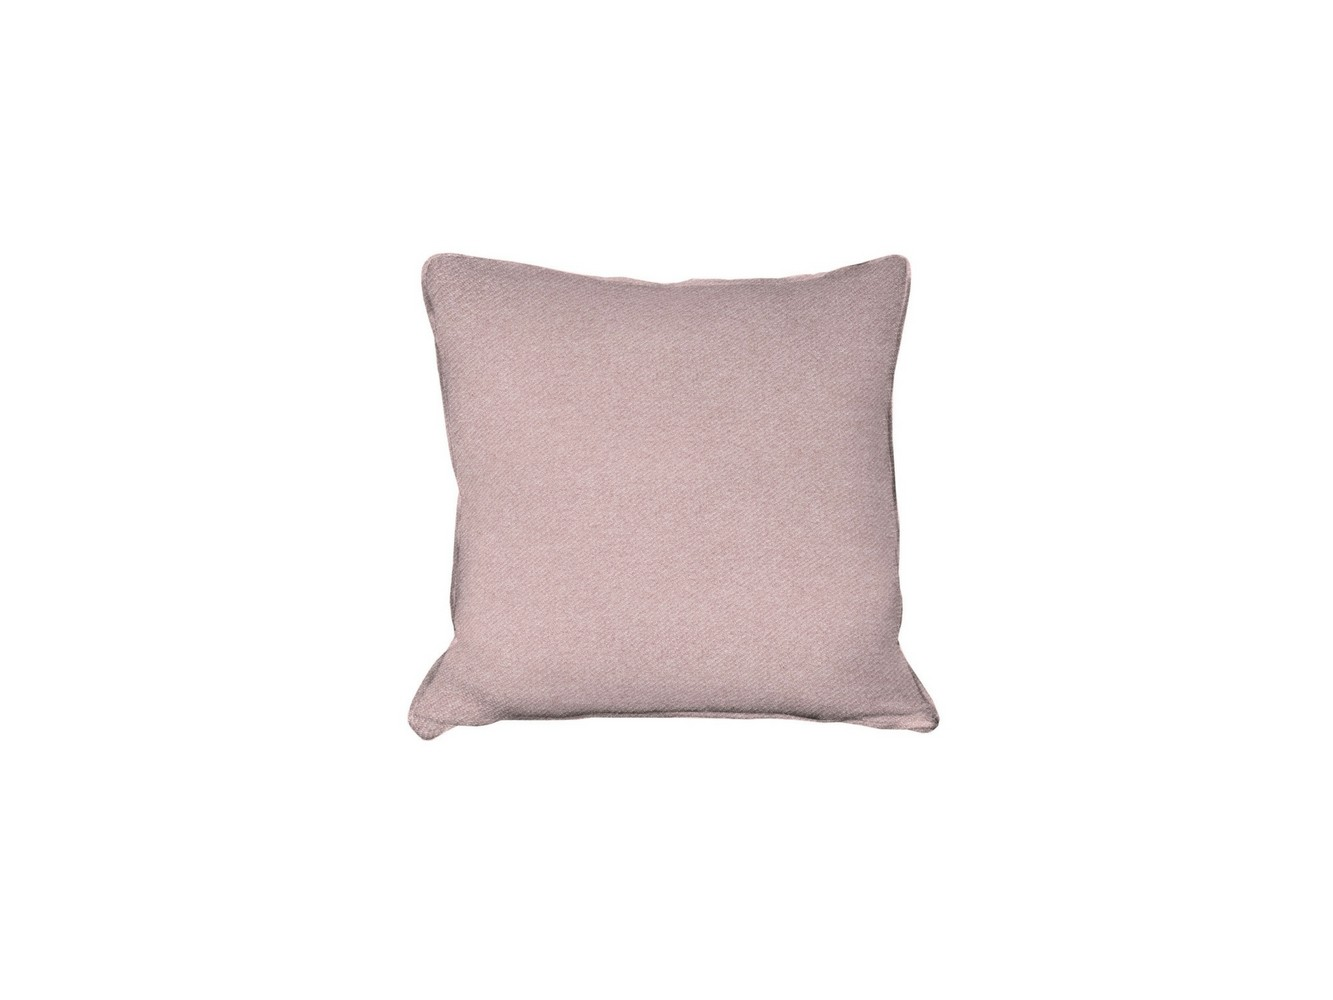 Extra Scatter Cushions - Fabric Candyfloss